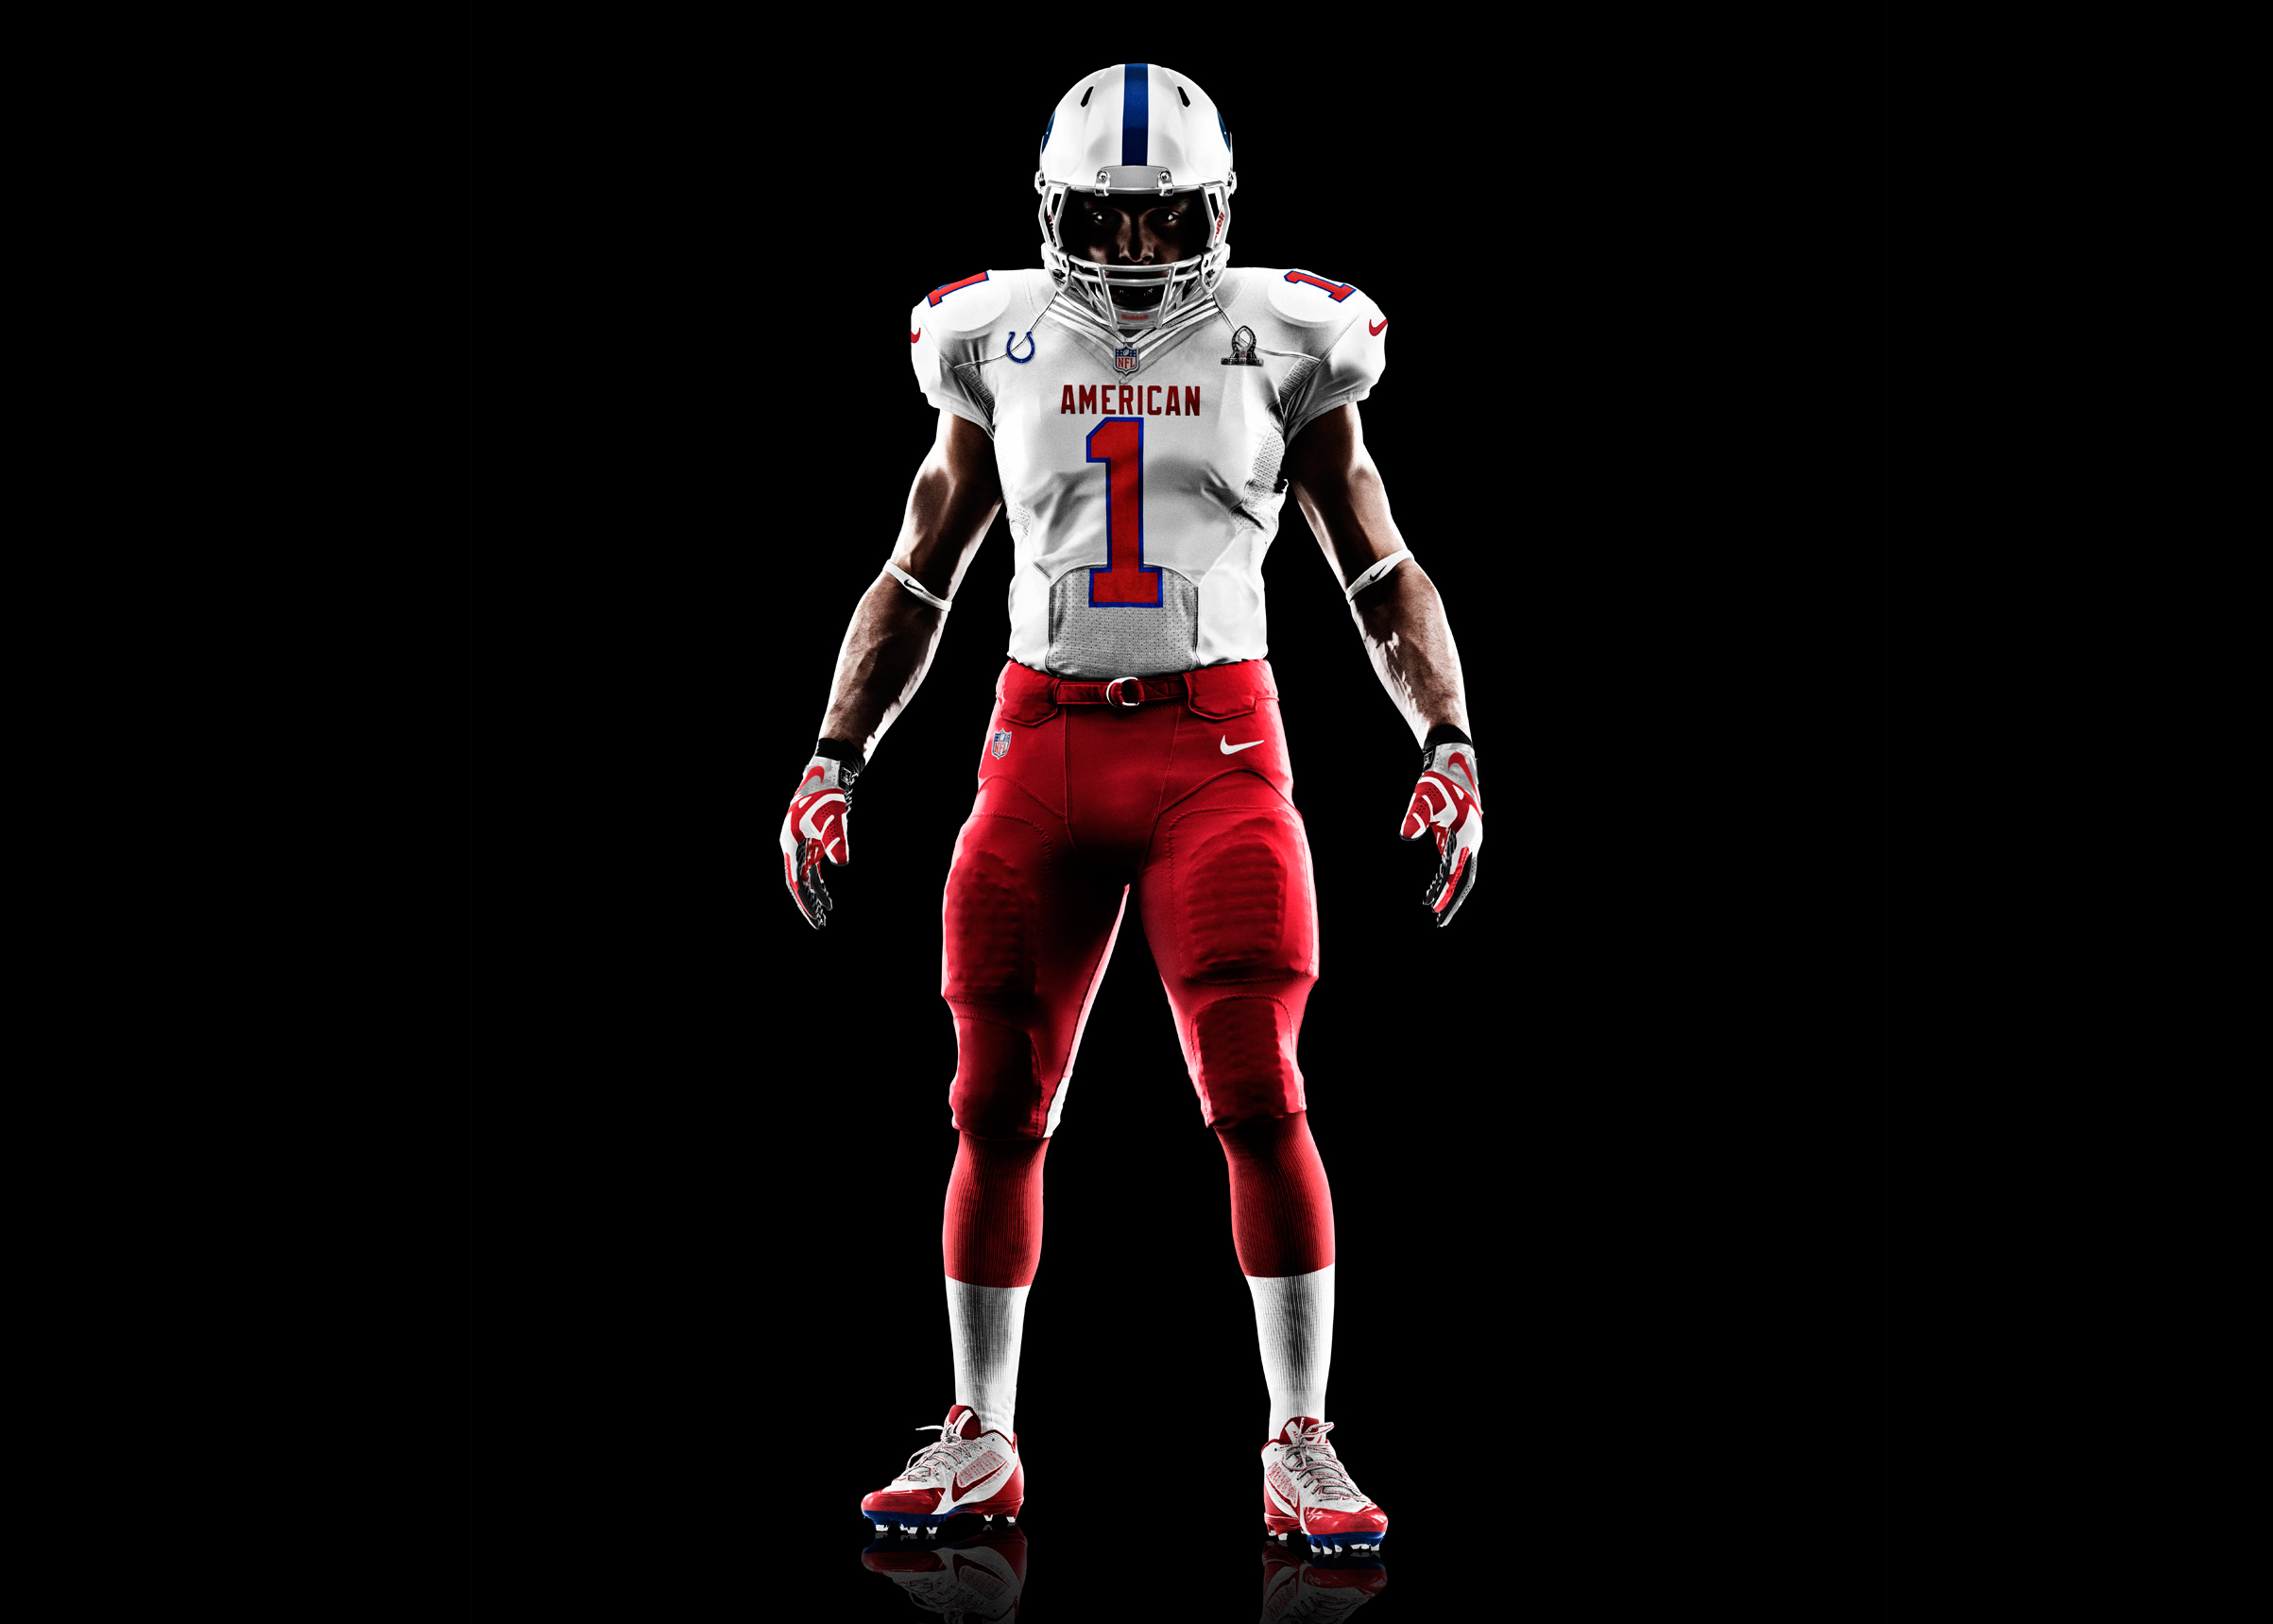 c01fb5e56 Nike unveils Pro Bowl uniforms for this Sunday | But at the end of ...